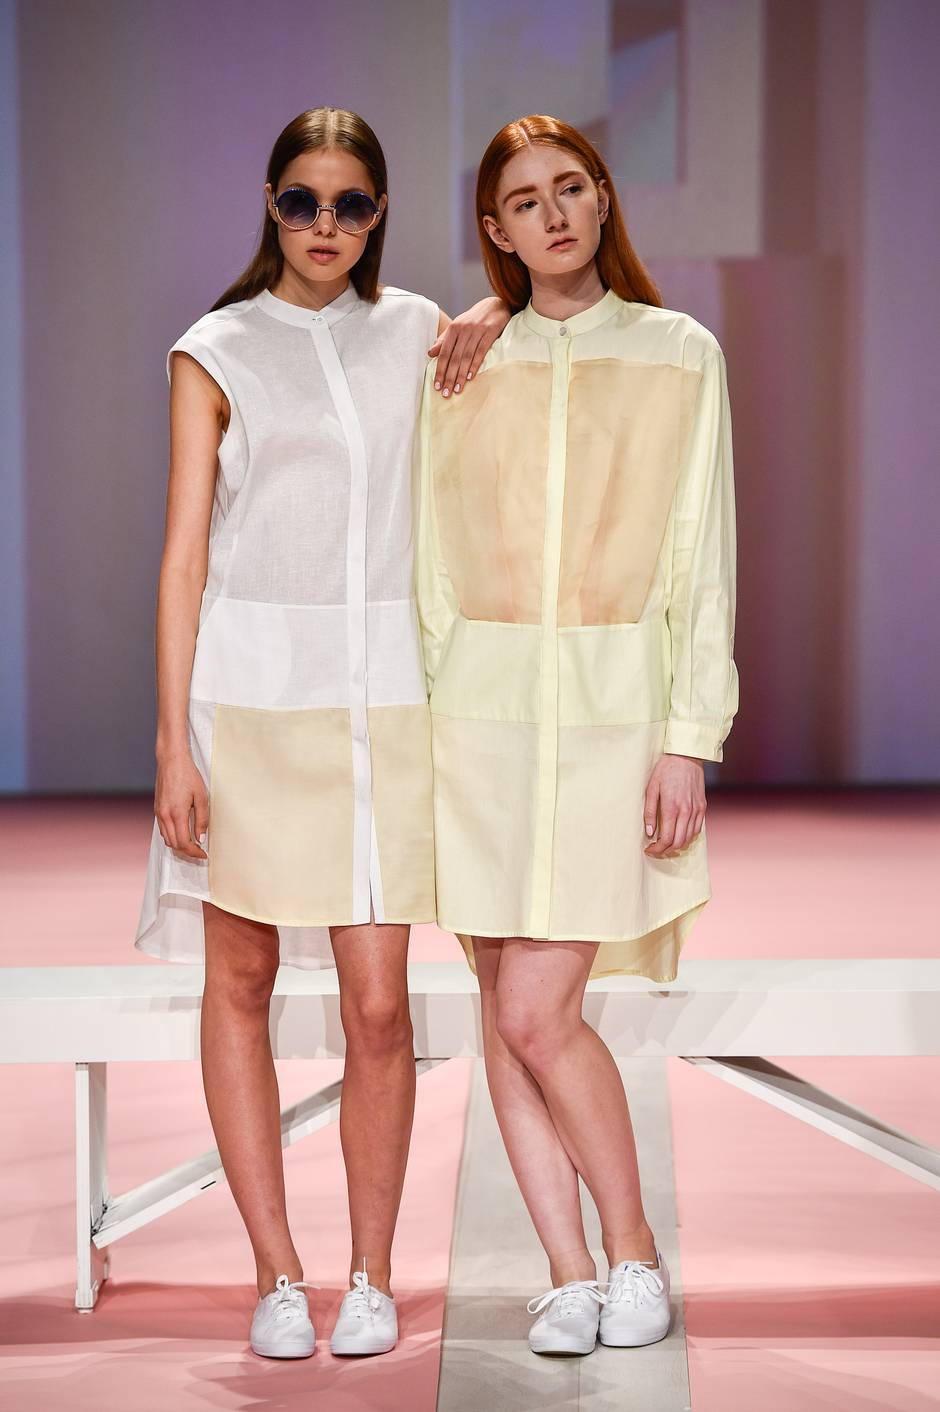 Best in show: The top five collections from Toronto fashion week